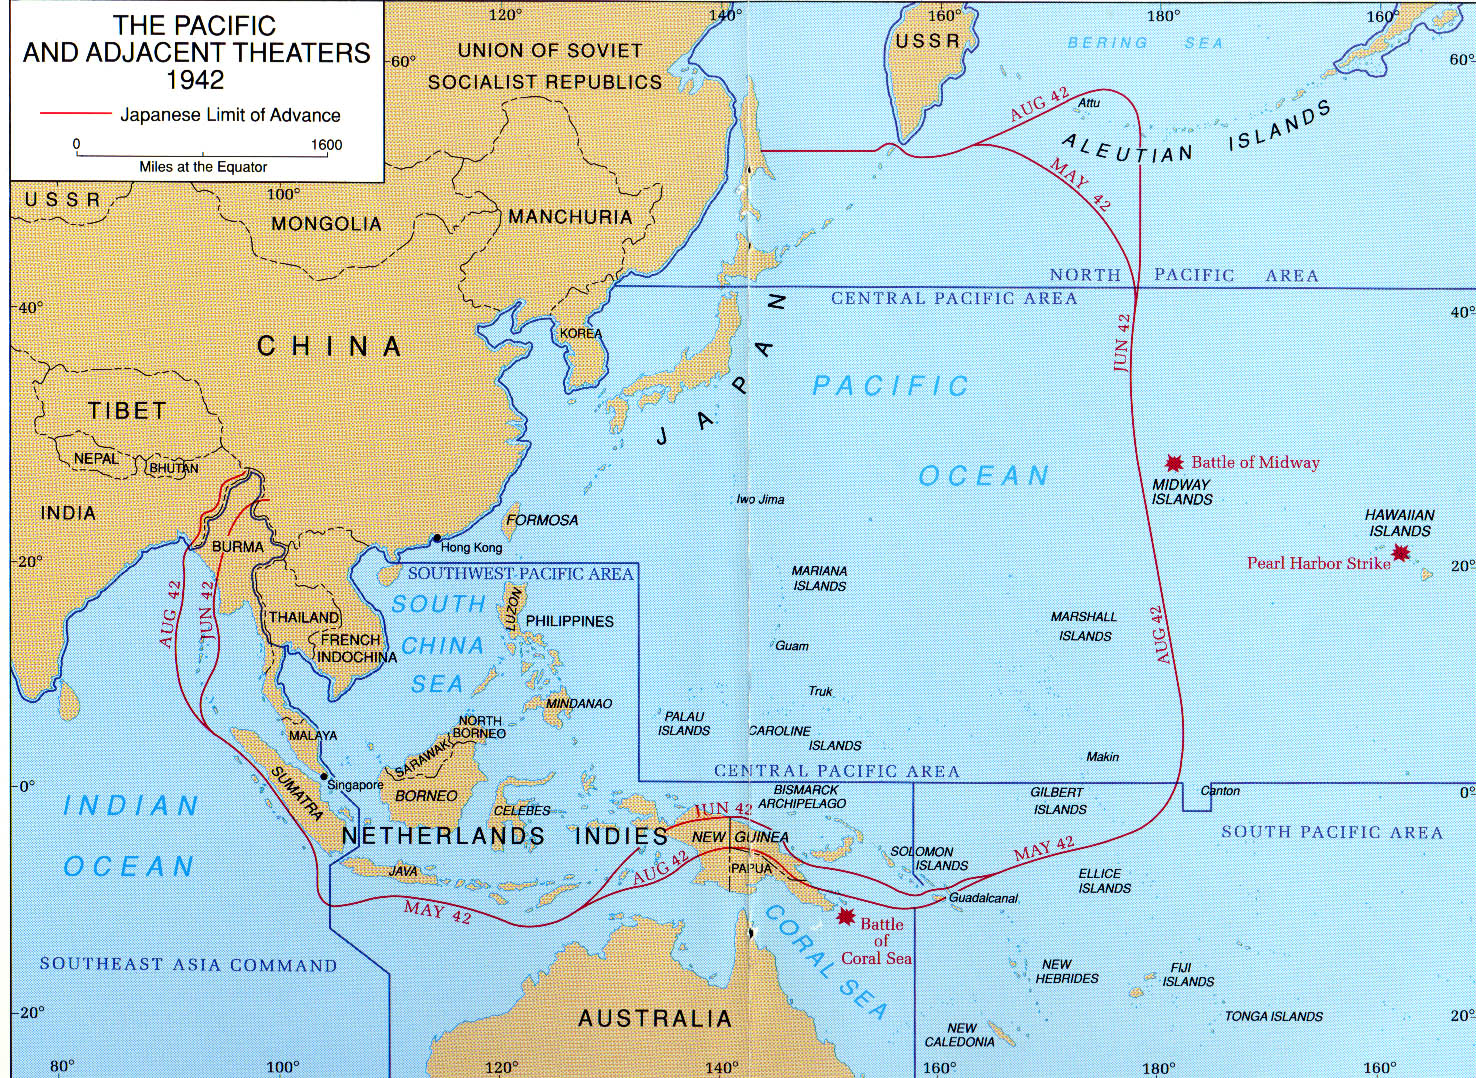 The aleutian islands war june 3 1942 august 24 1943 explorenorth the pacific and adjacent theaters 1942 map gumiabroncs Images